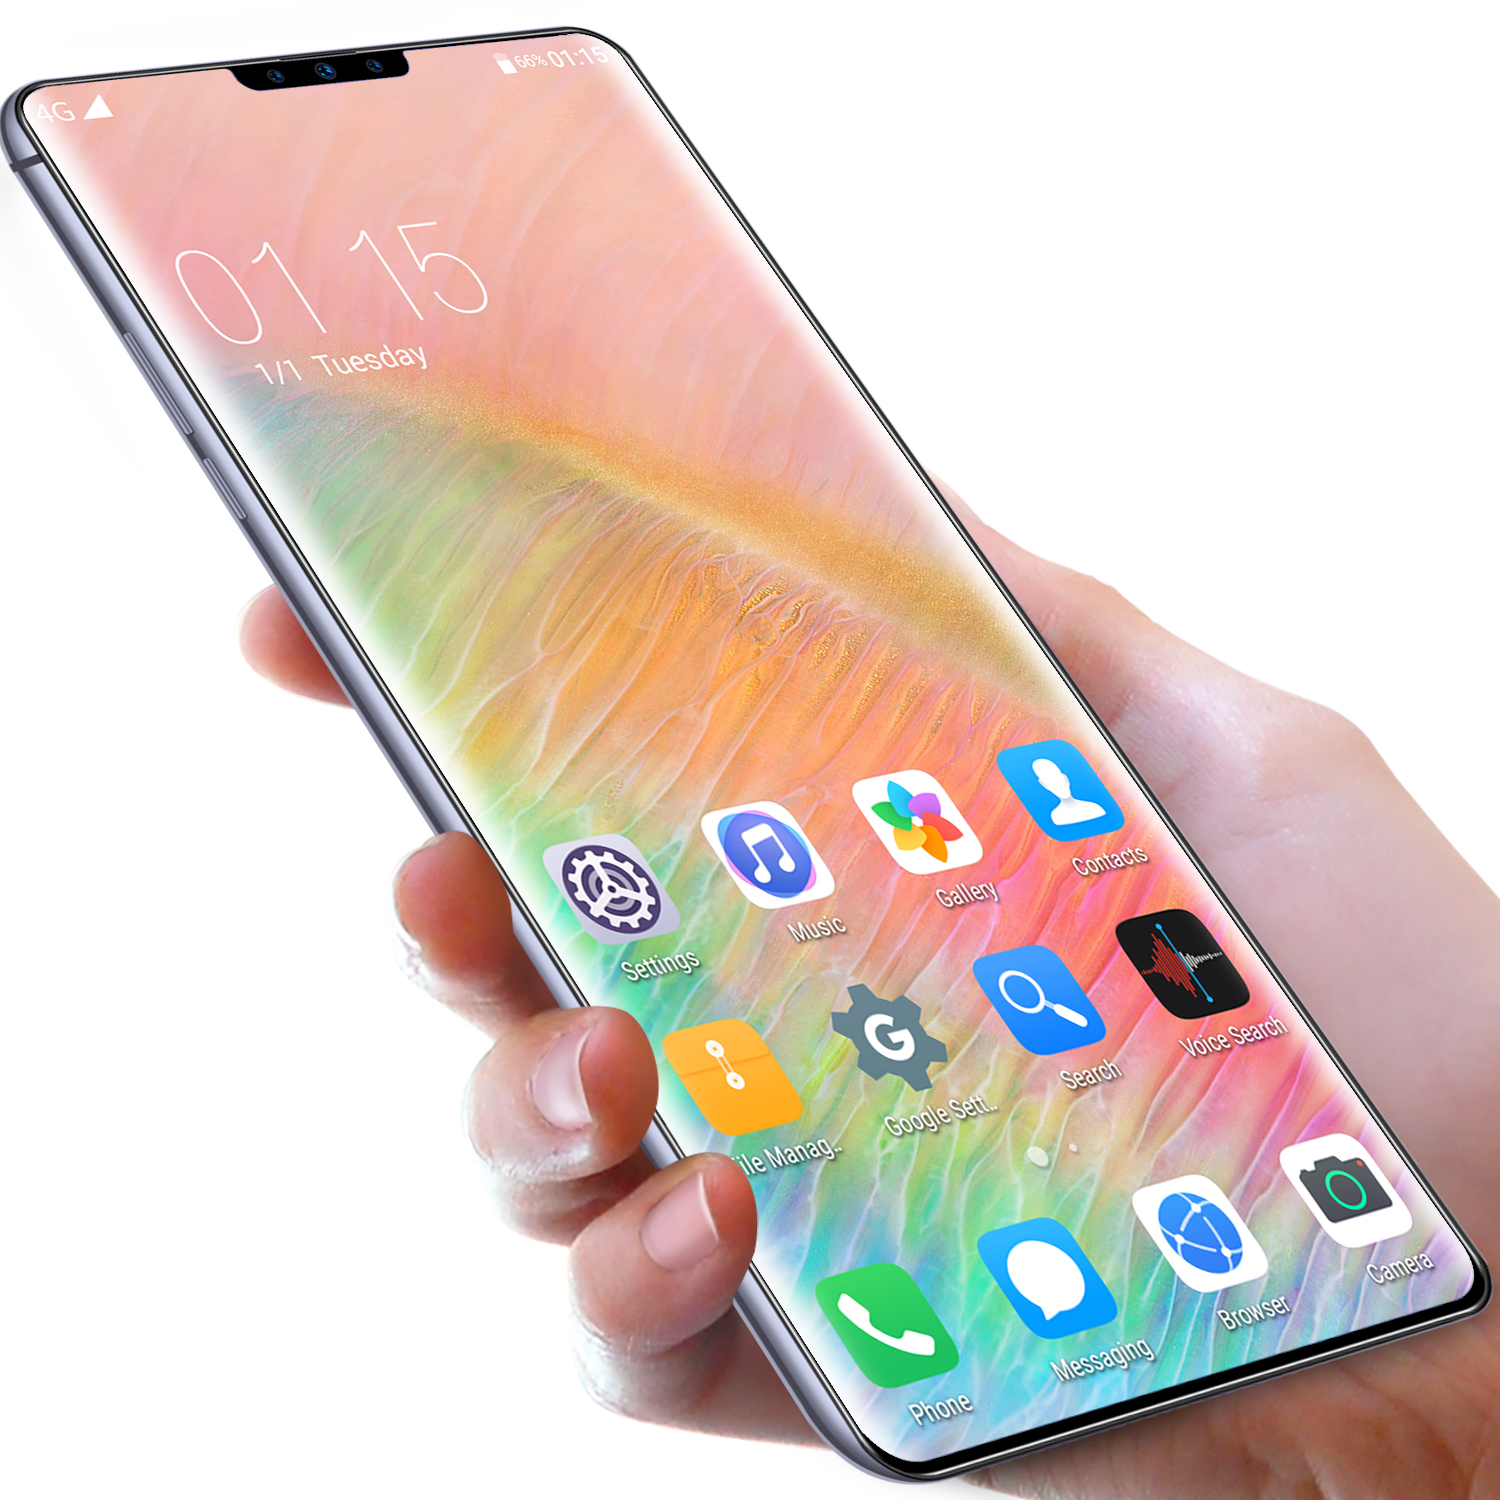 Mate30pro mobilePhones Android 10.0 System waterproof Mobail Phone Mate30pro Smartphone Ten Core Cellphone